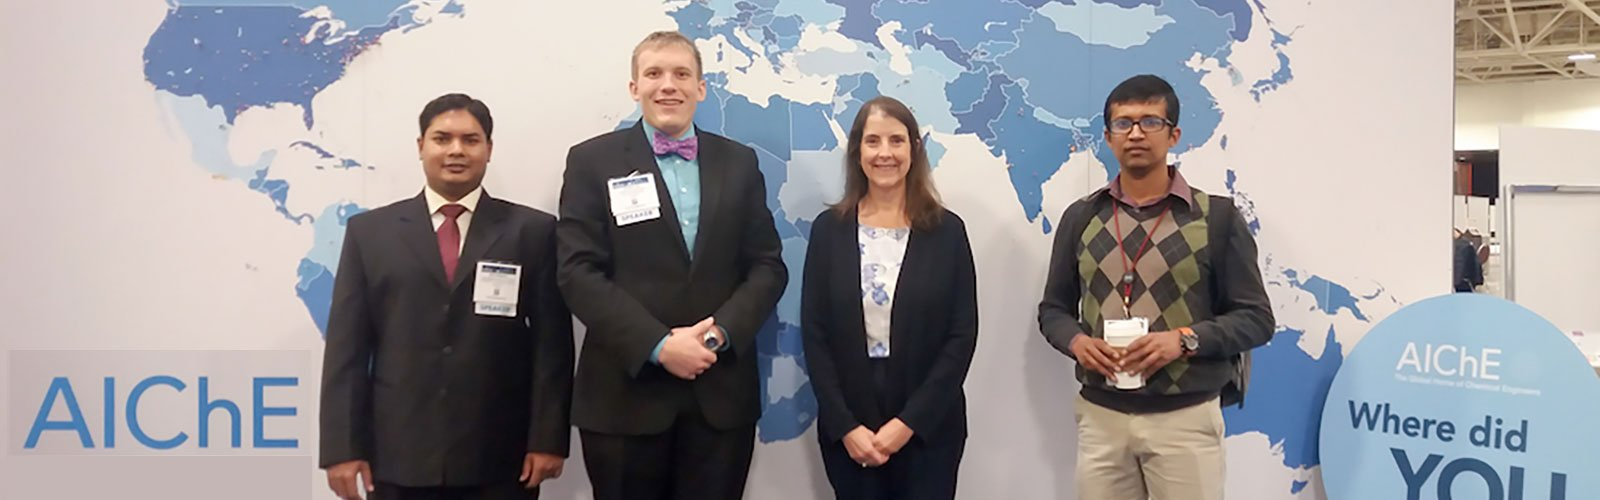 Three graduate students and thier professor posing in front of a map.